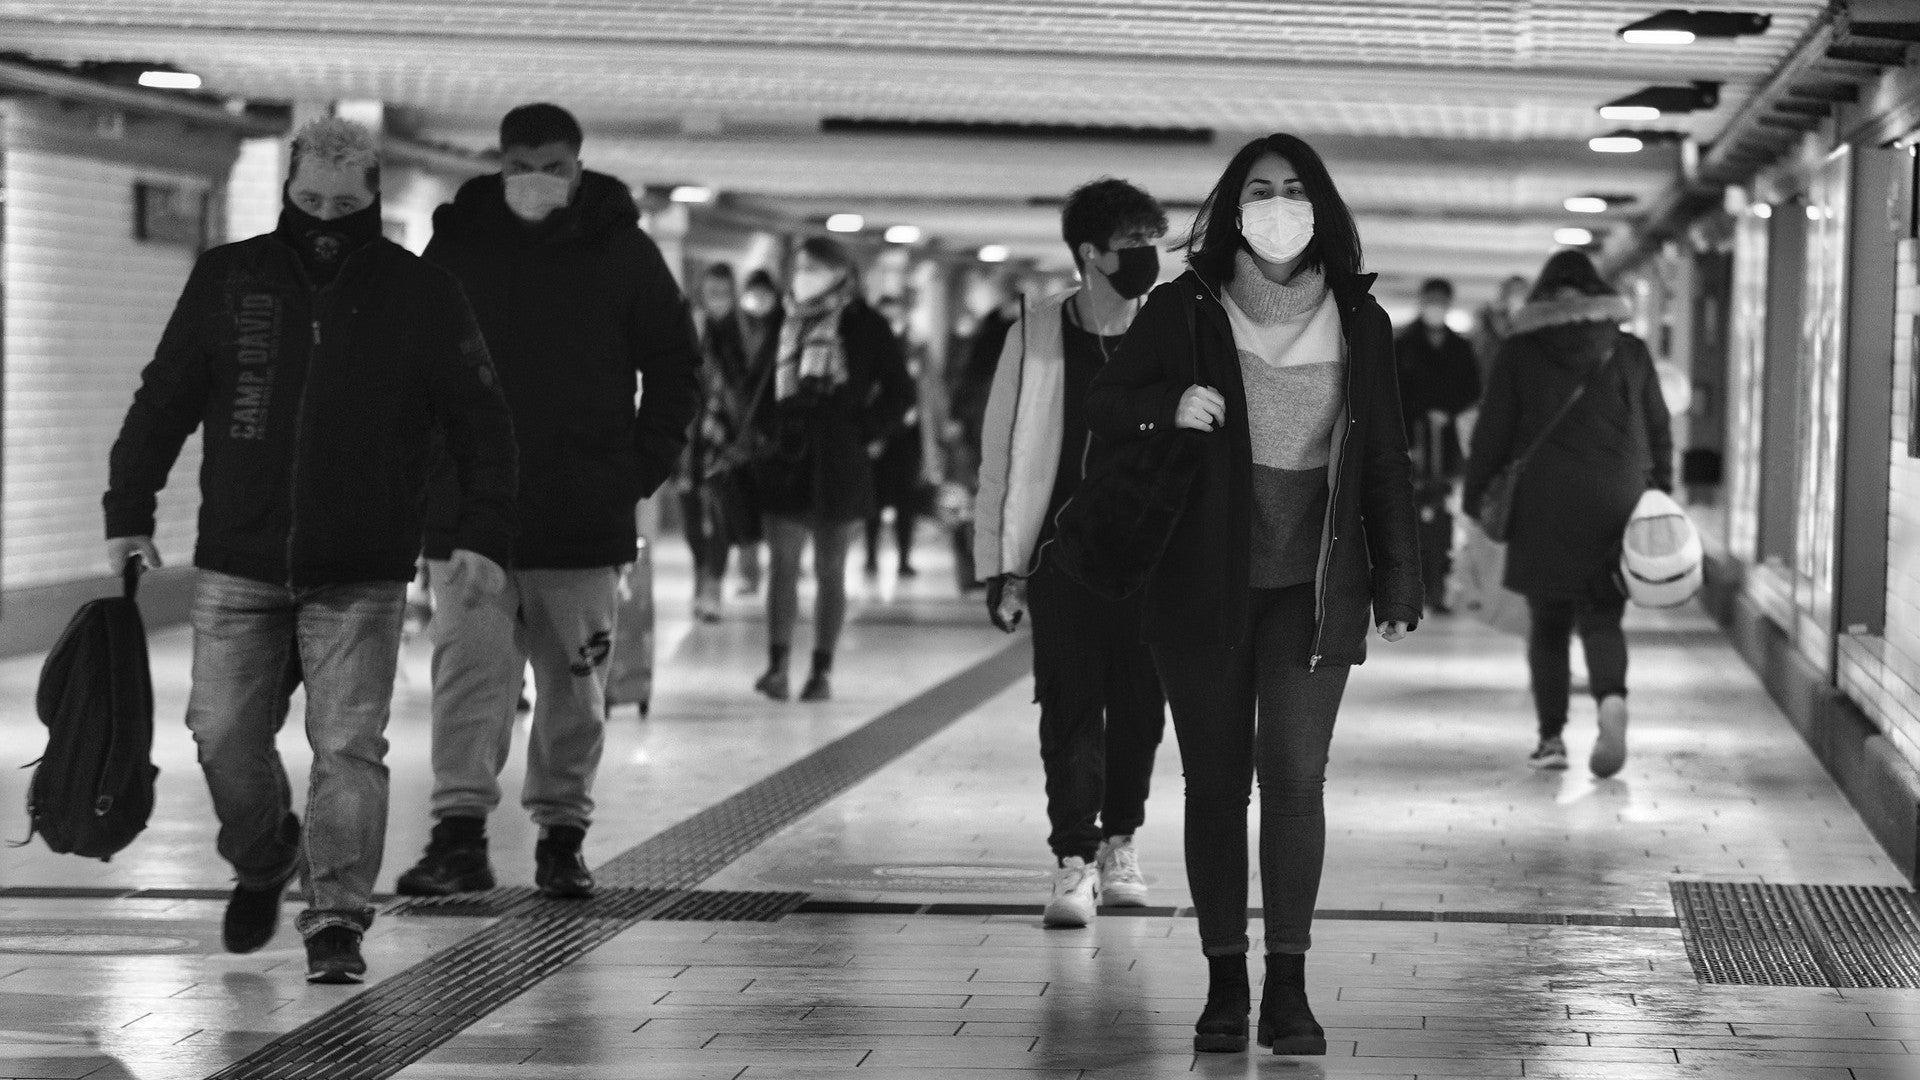 People with masks walk through long hallway.